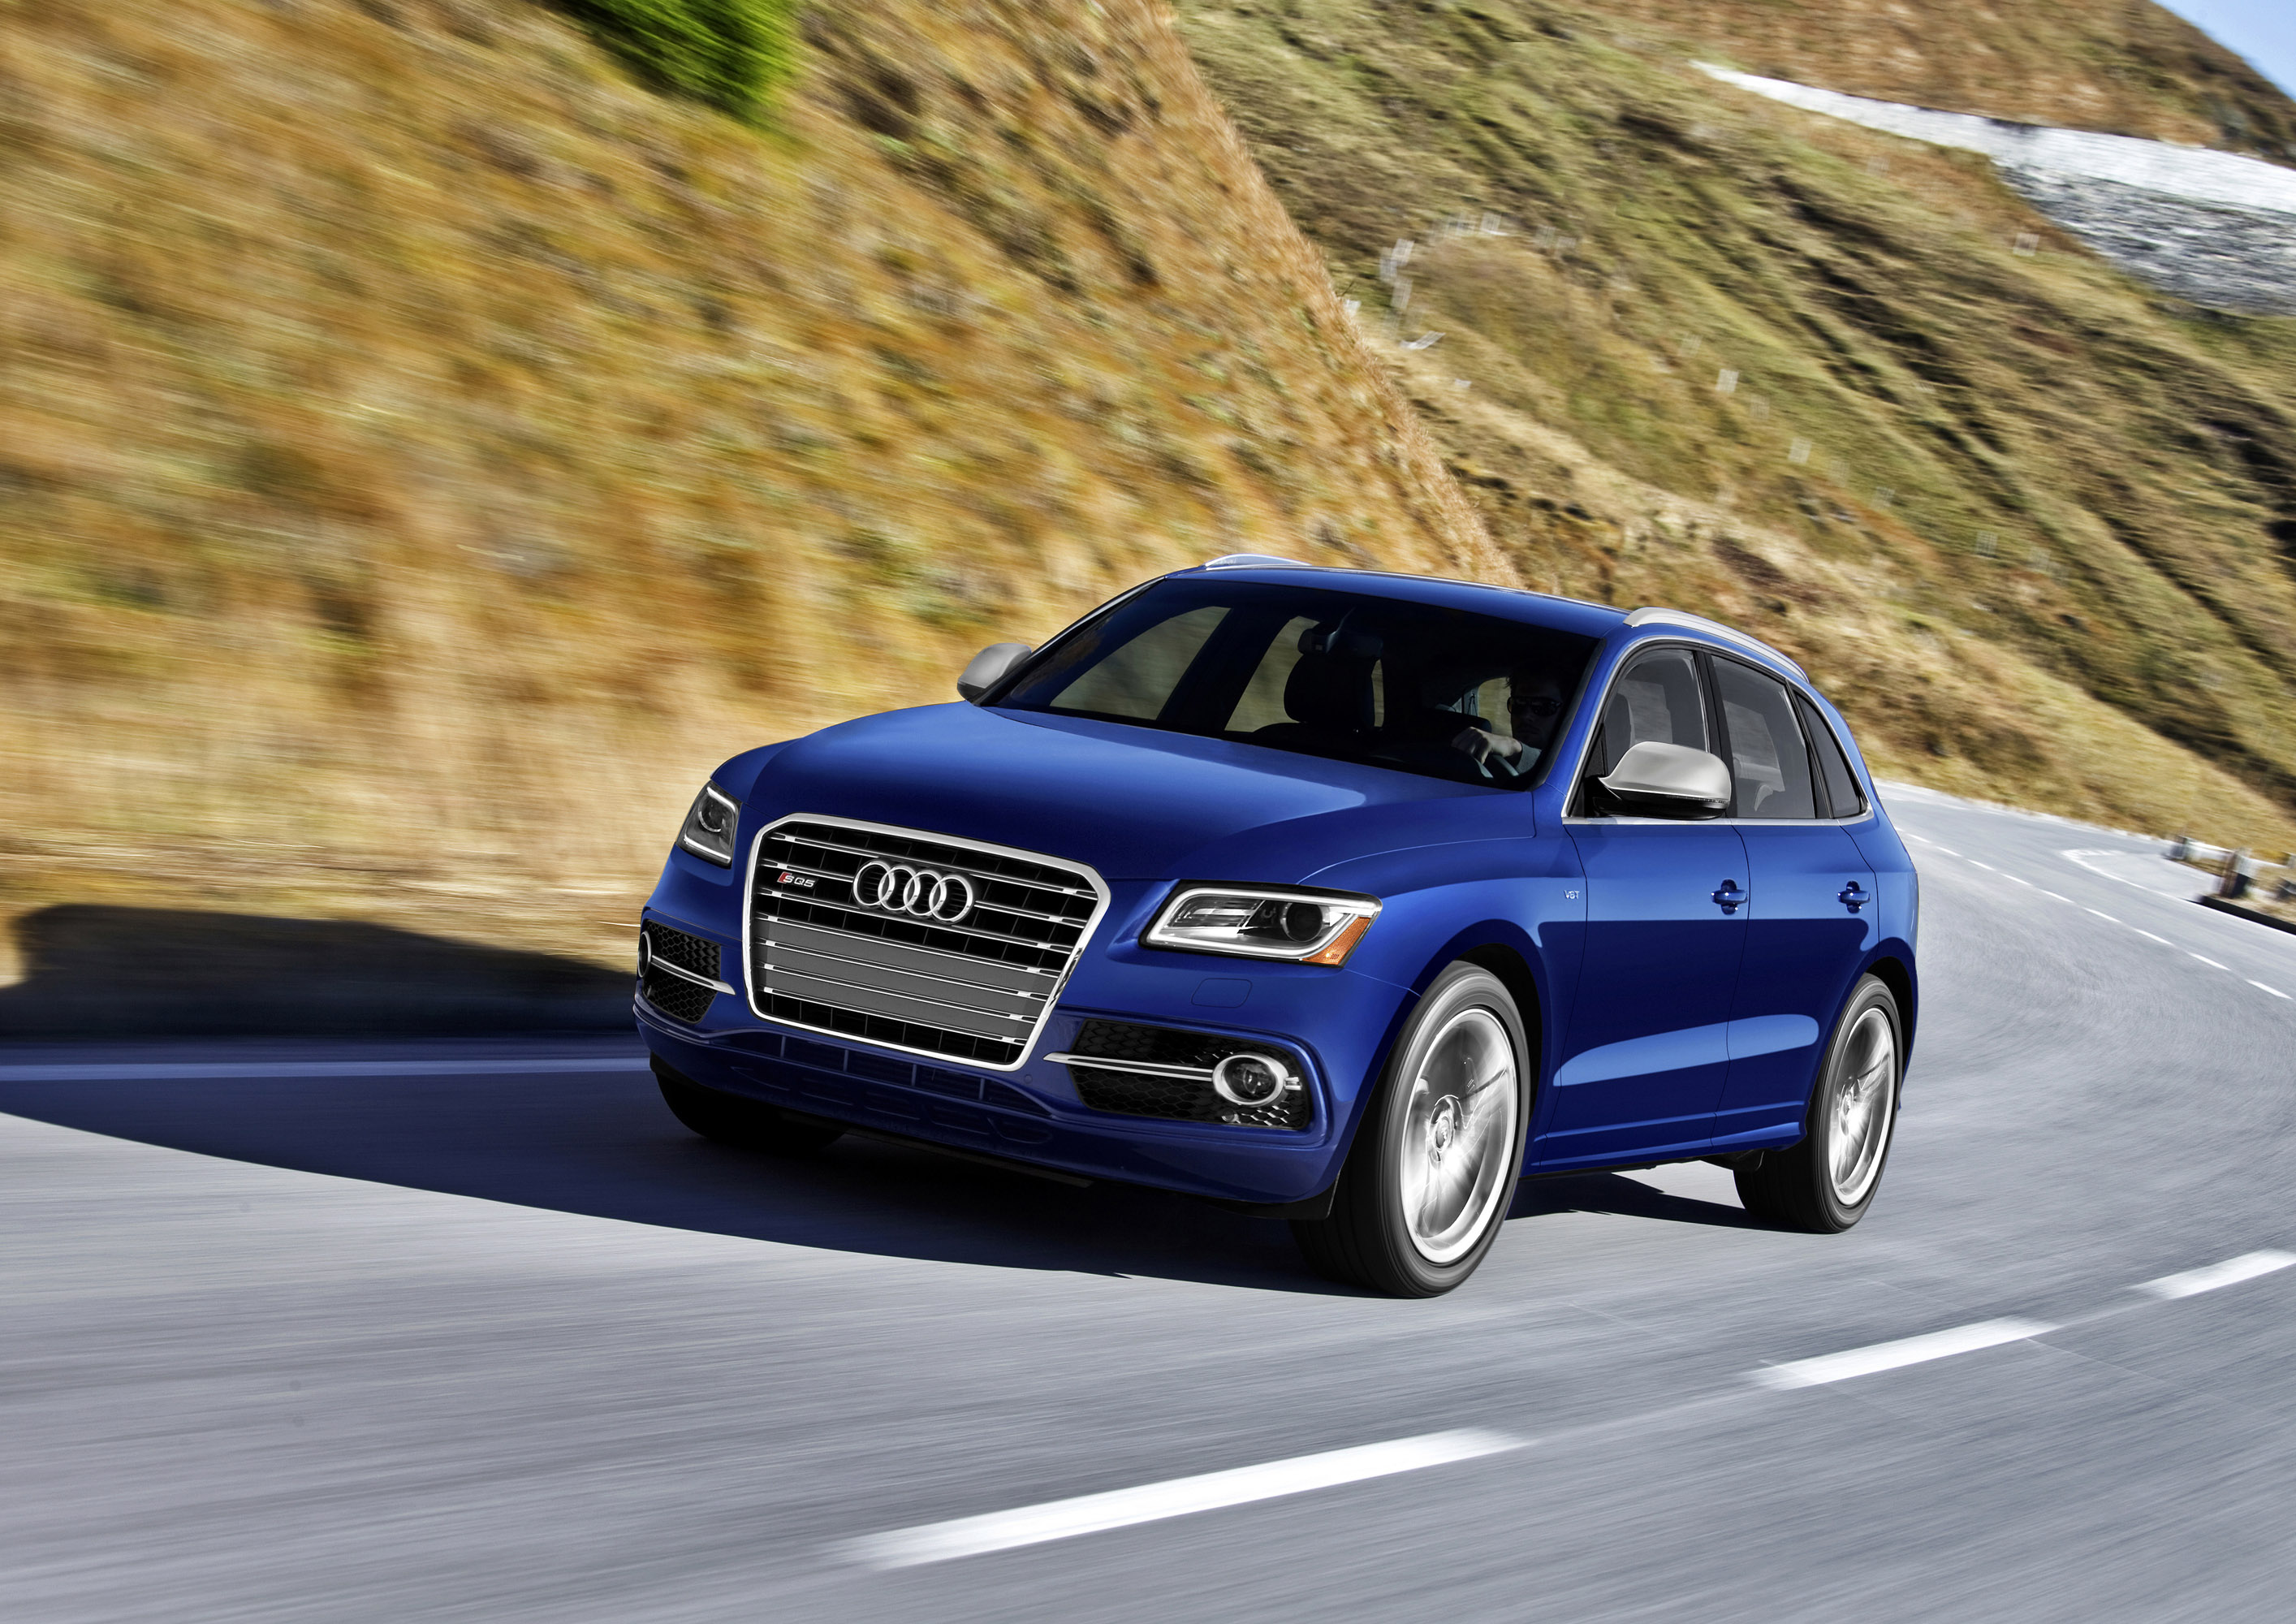 tdi driving version the with of news s new latest audi plus emphasises about price